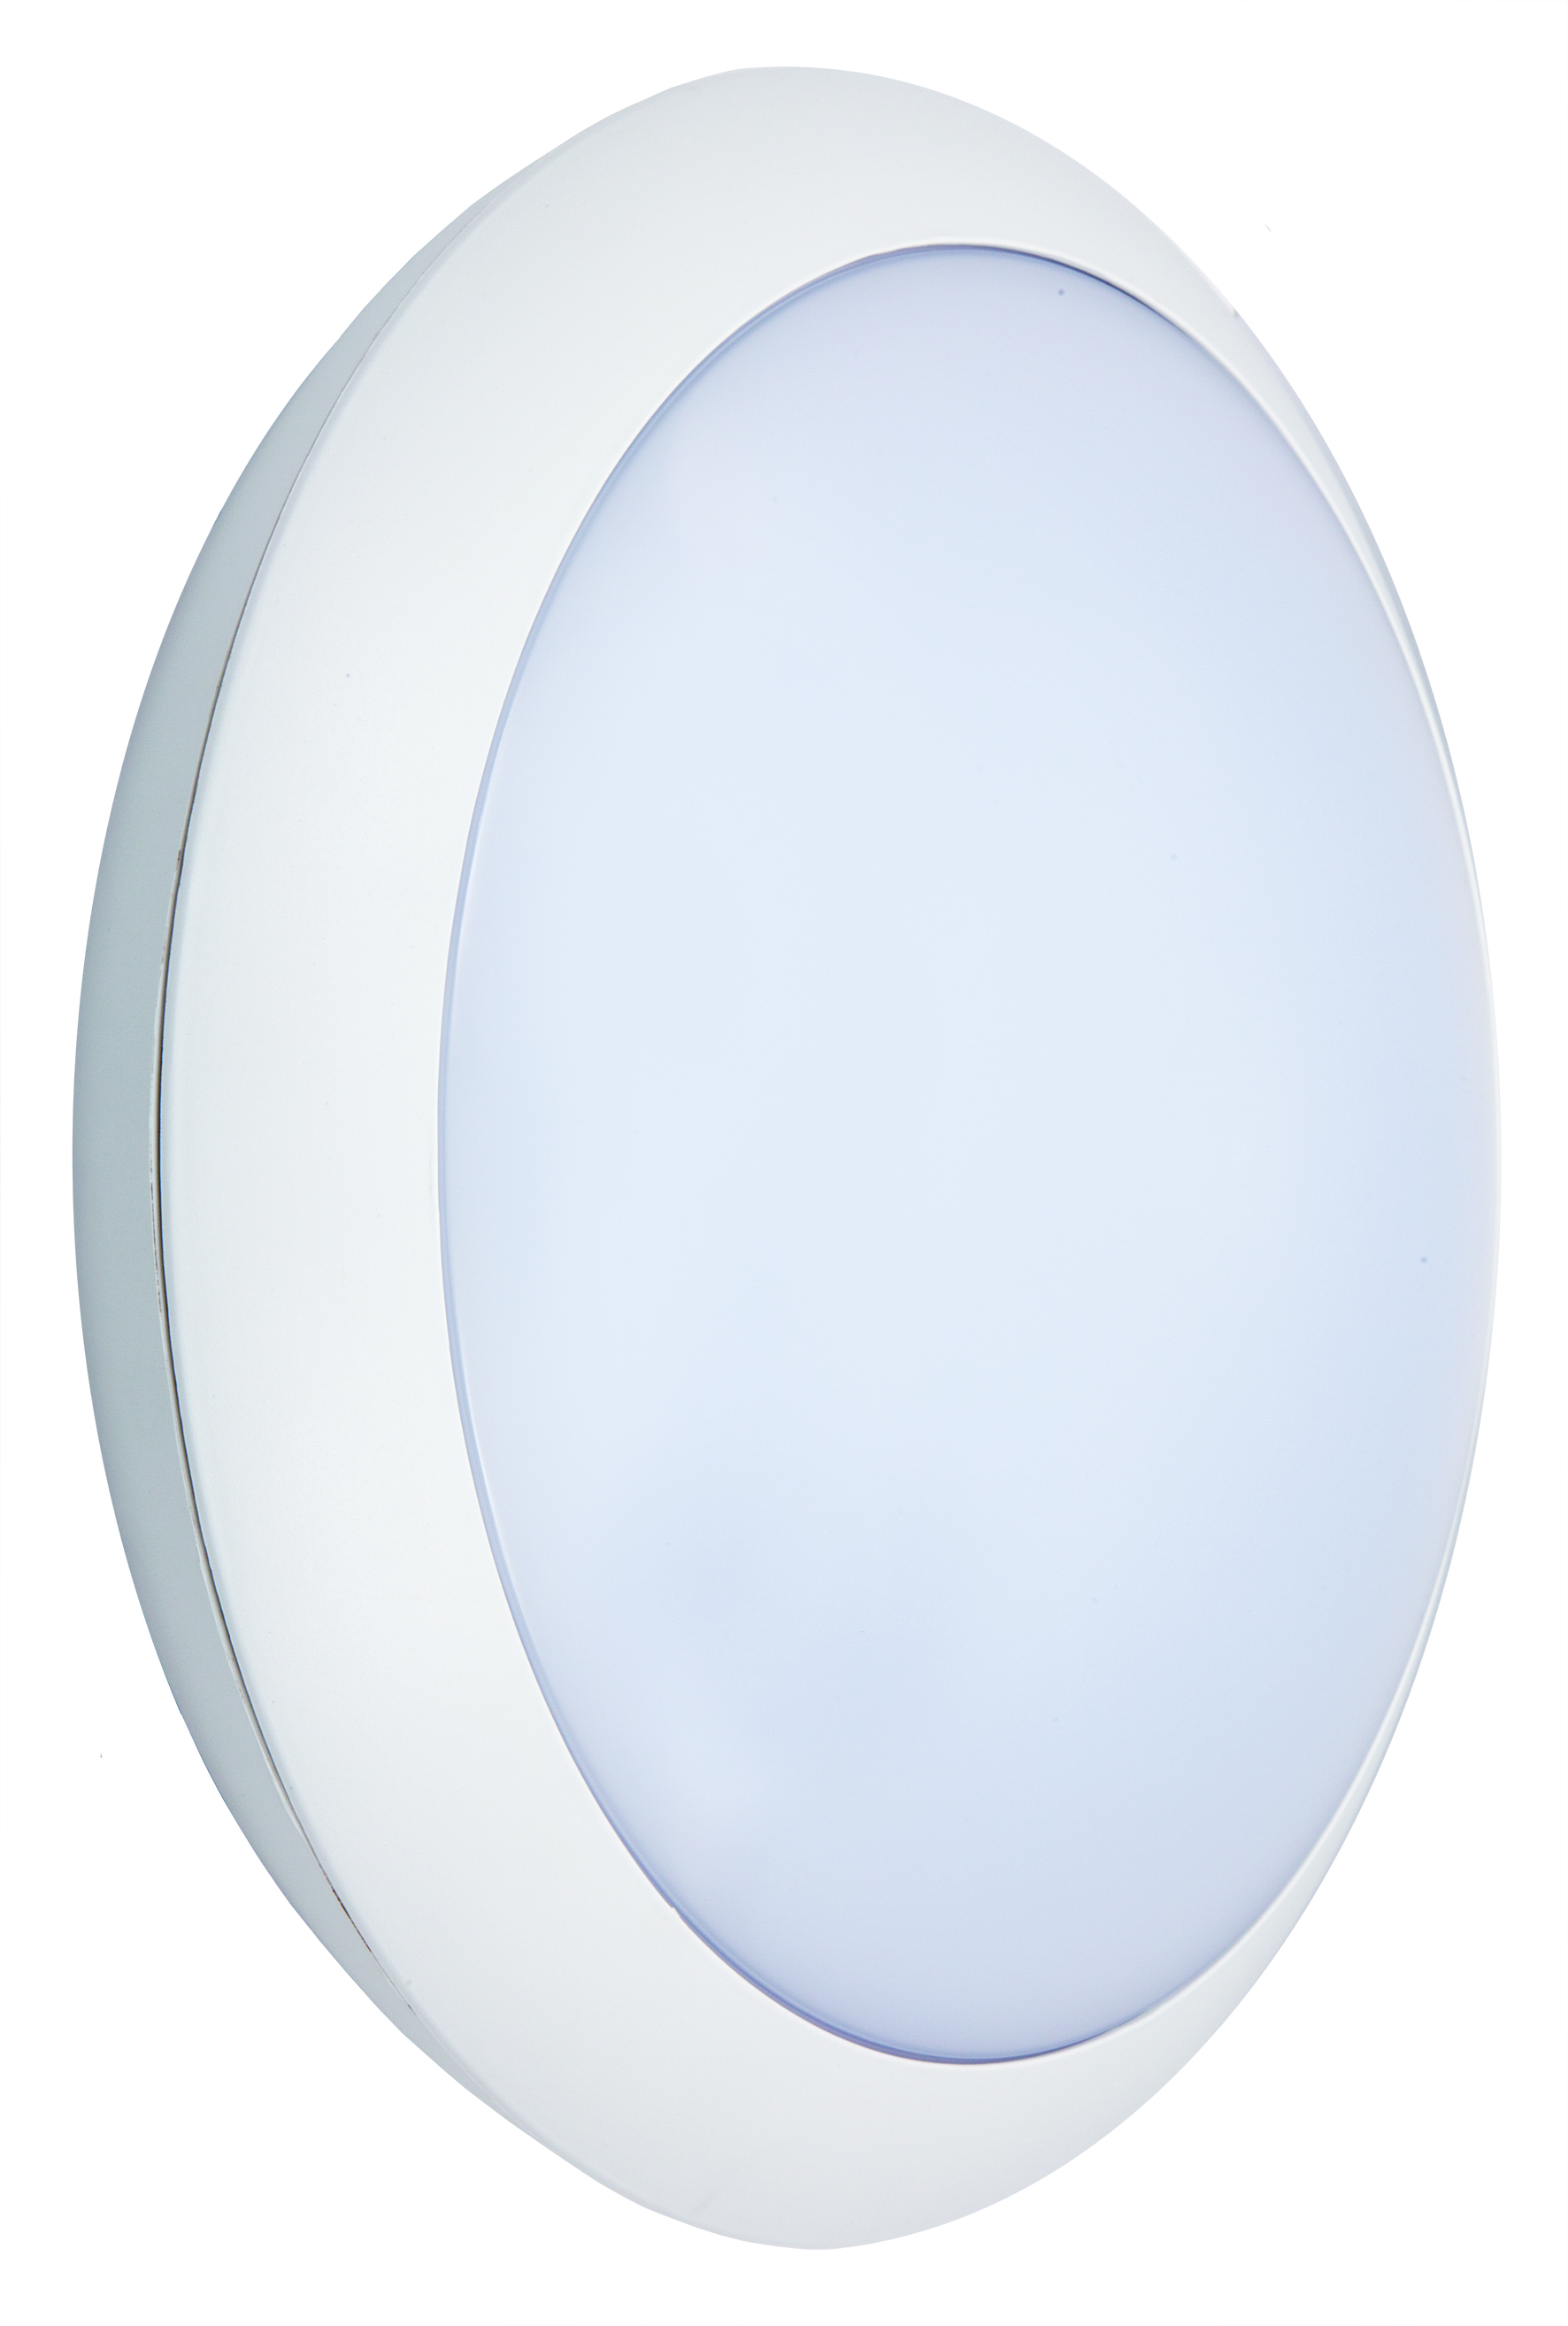 REELTECH LED IP54 Slim Round Bulkhead